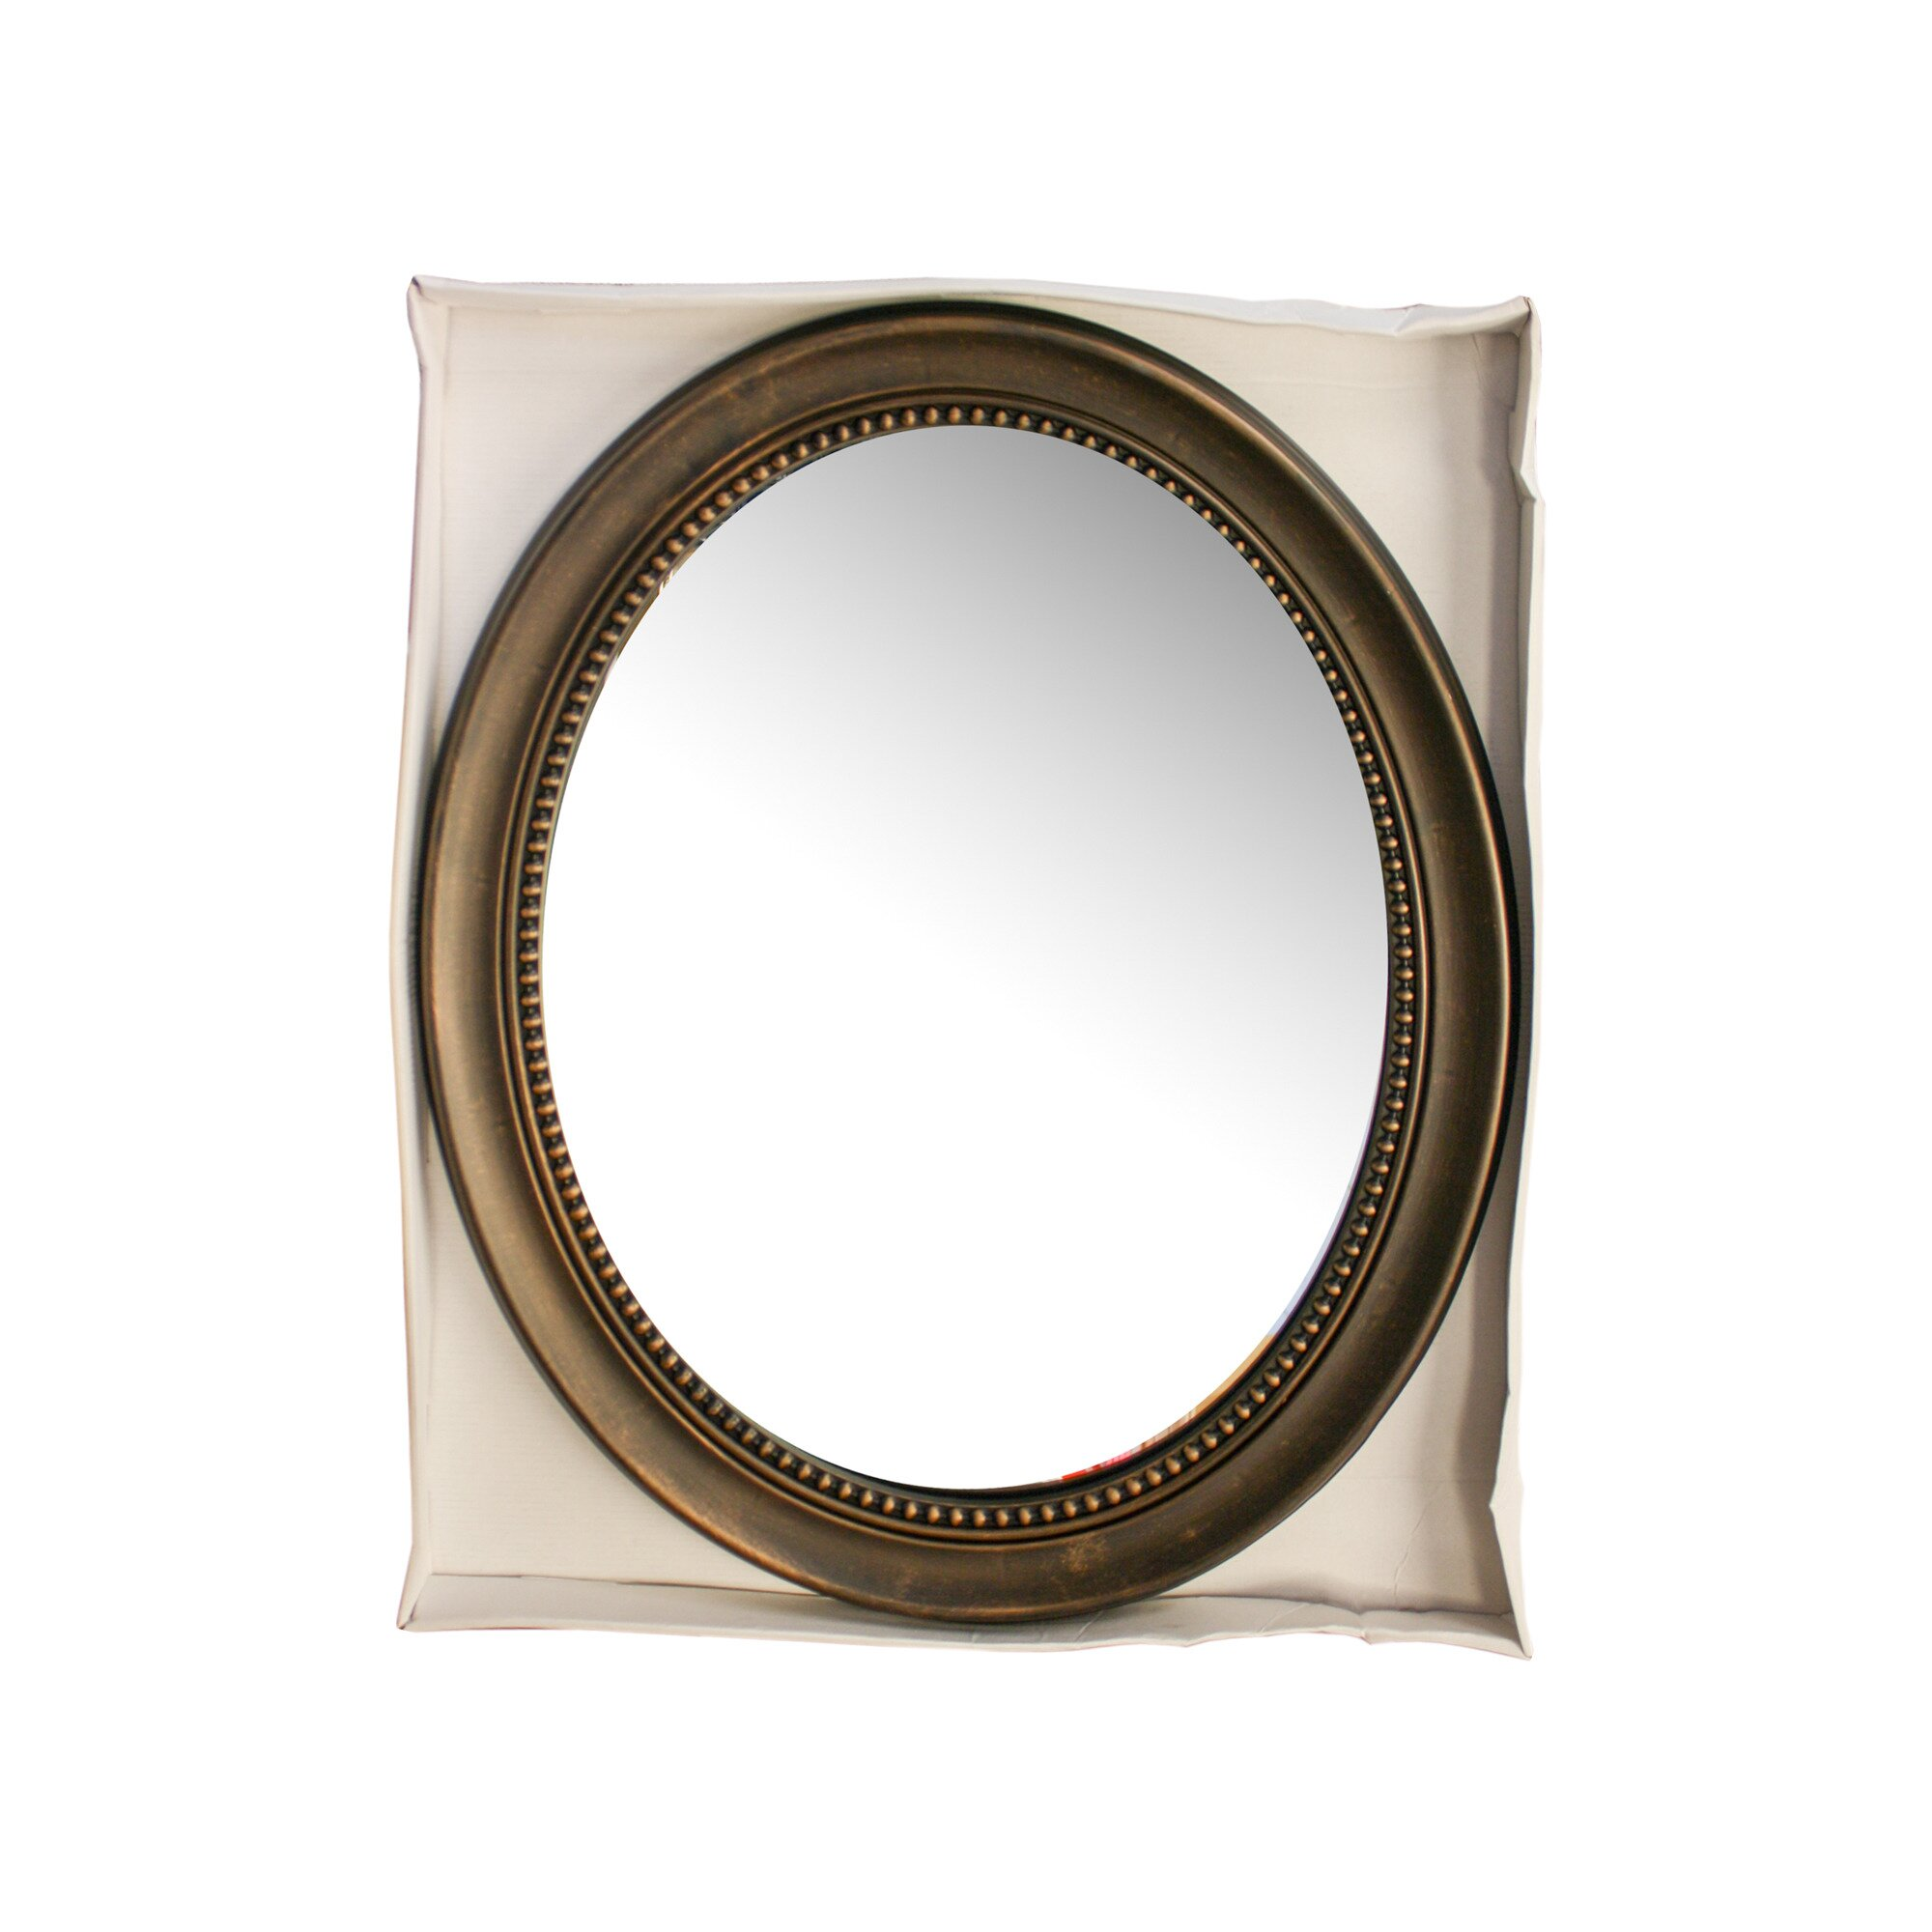 Koleimports antique bronze framed oval mirror reviews wayfair for Bronze framed bathroom mirror